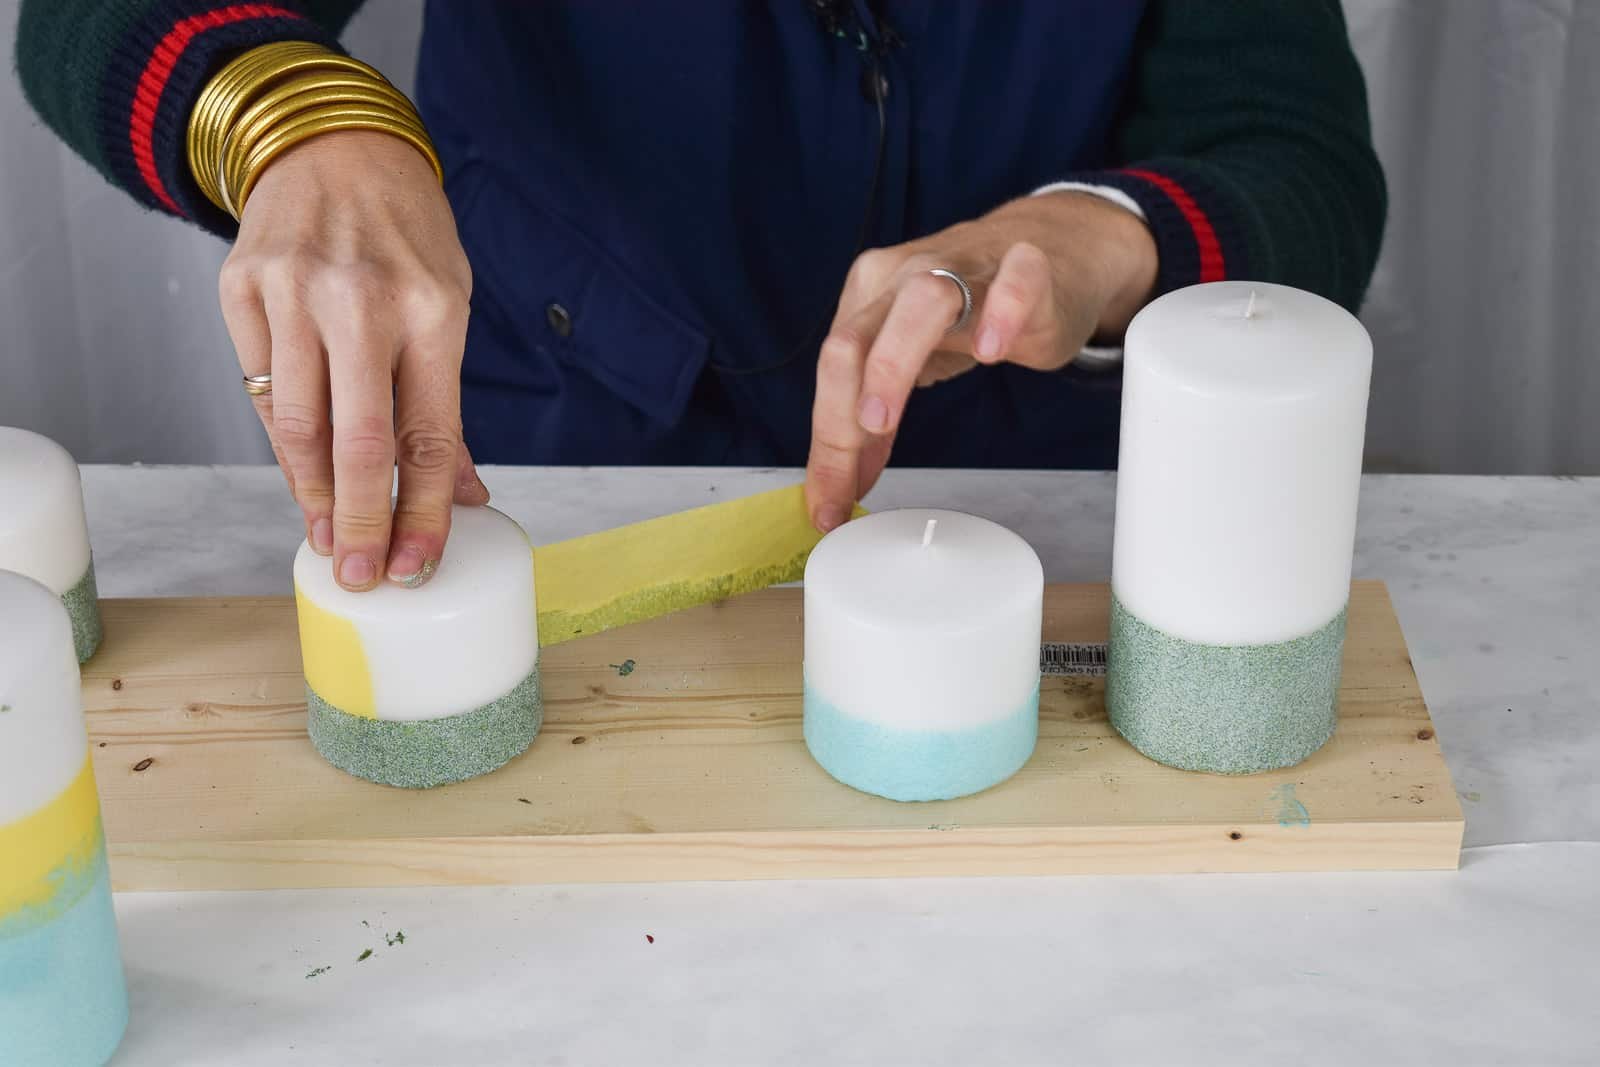 remove the tape from the candle